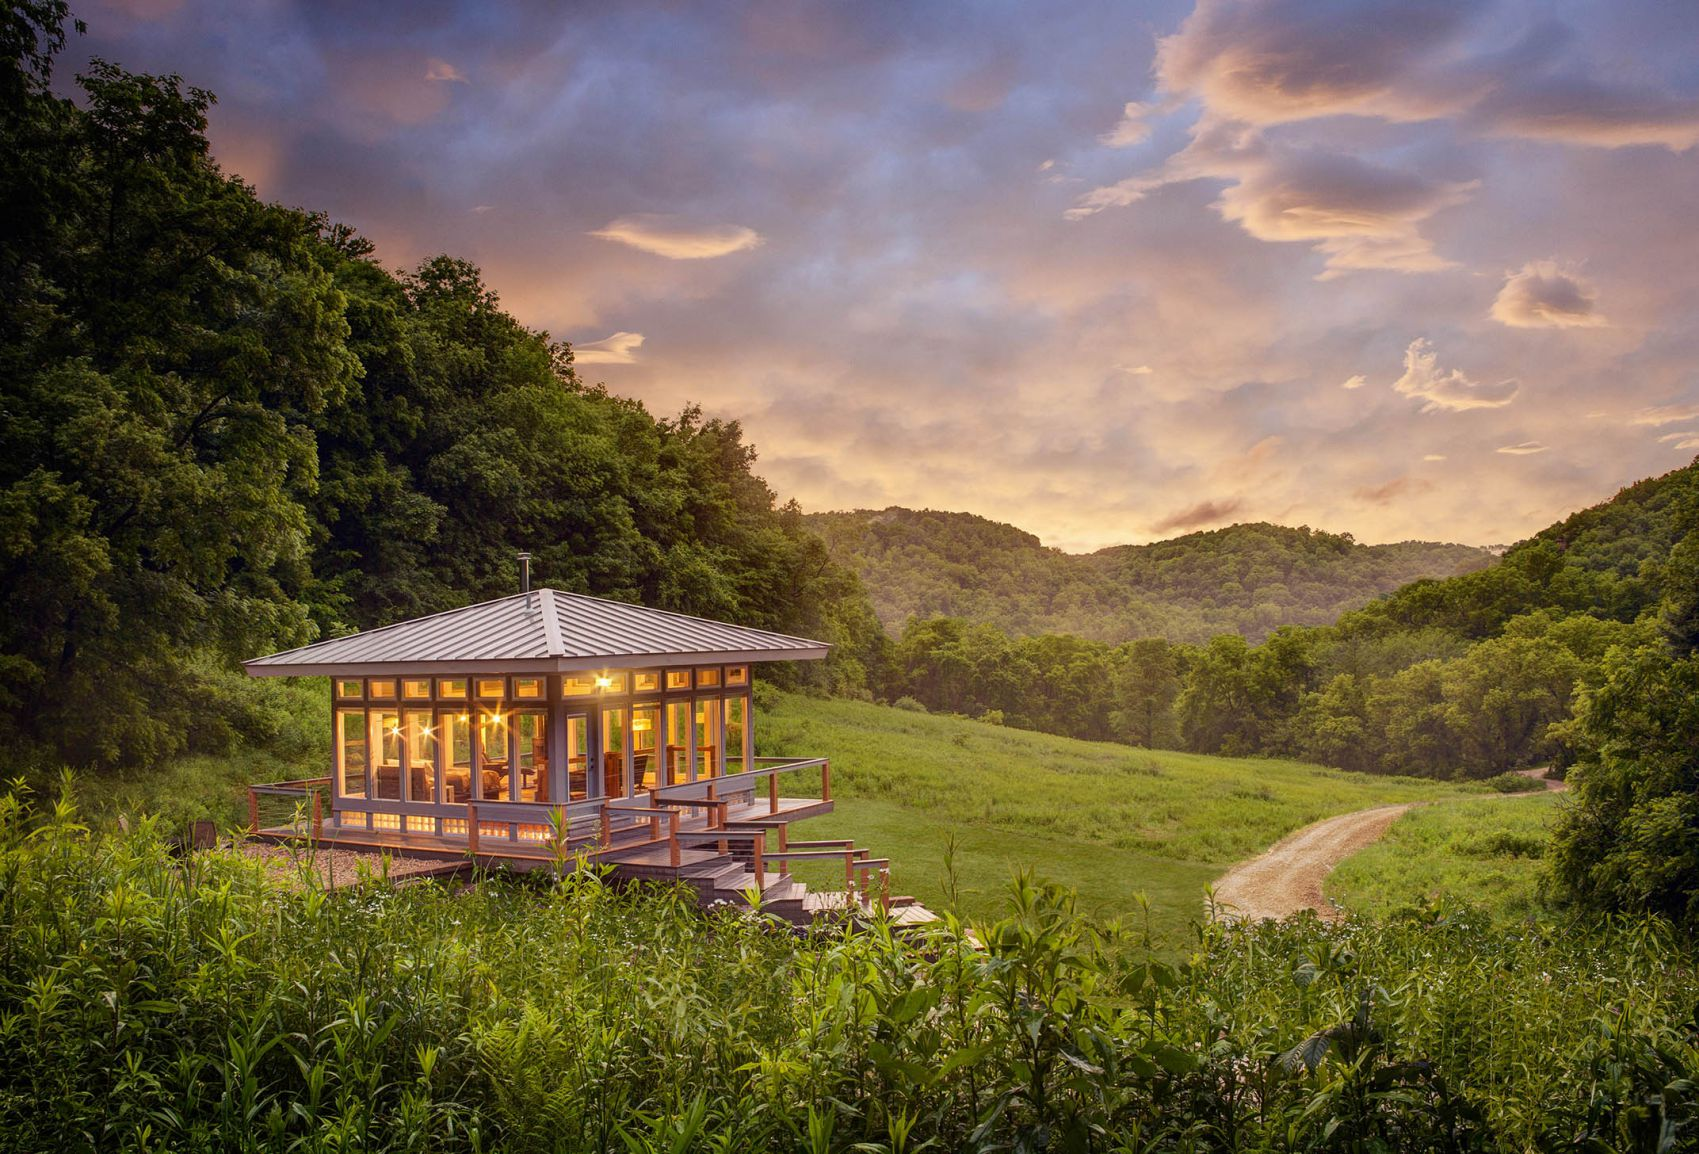 The Meadow house is located a few miles from the town of Madison, Wisconsin in a wide, verdant clearing in ...